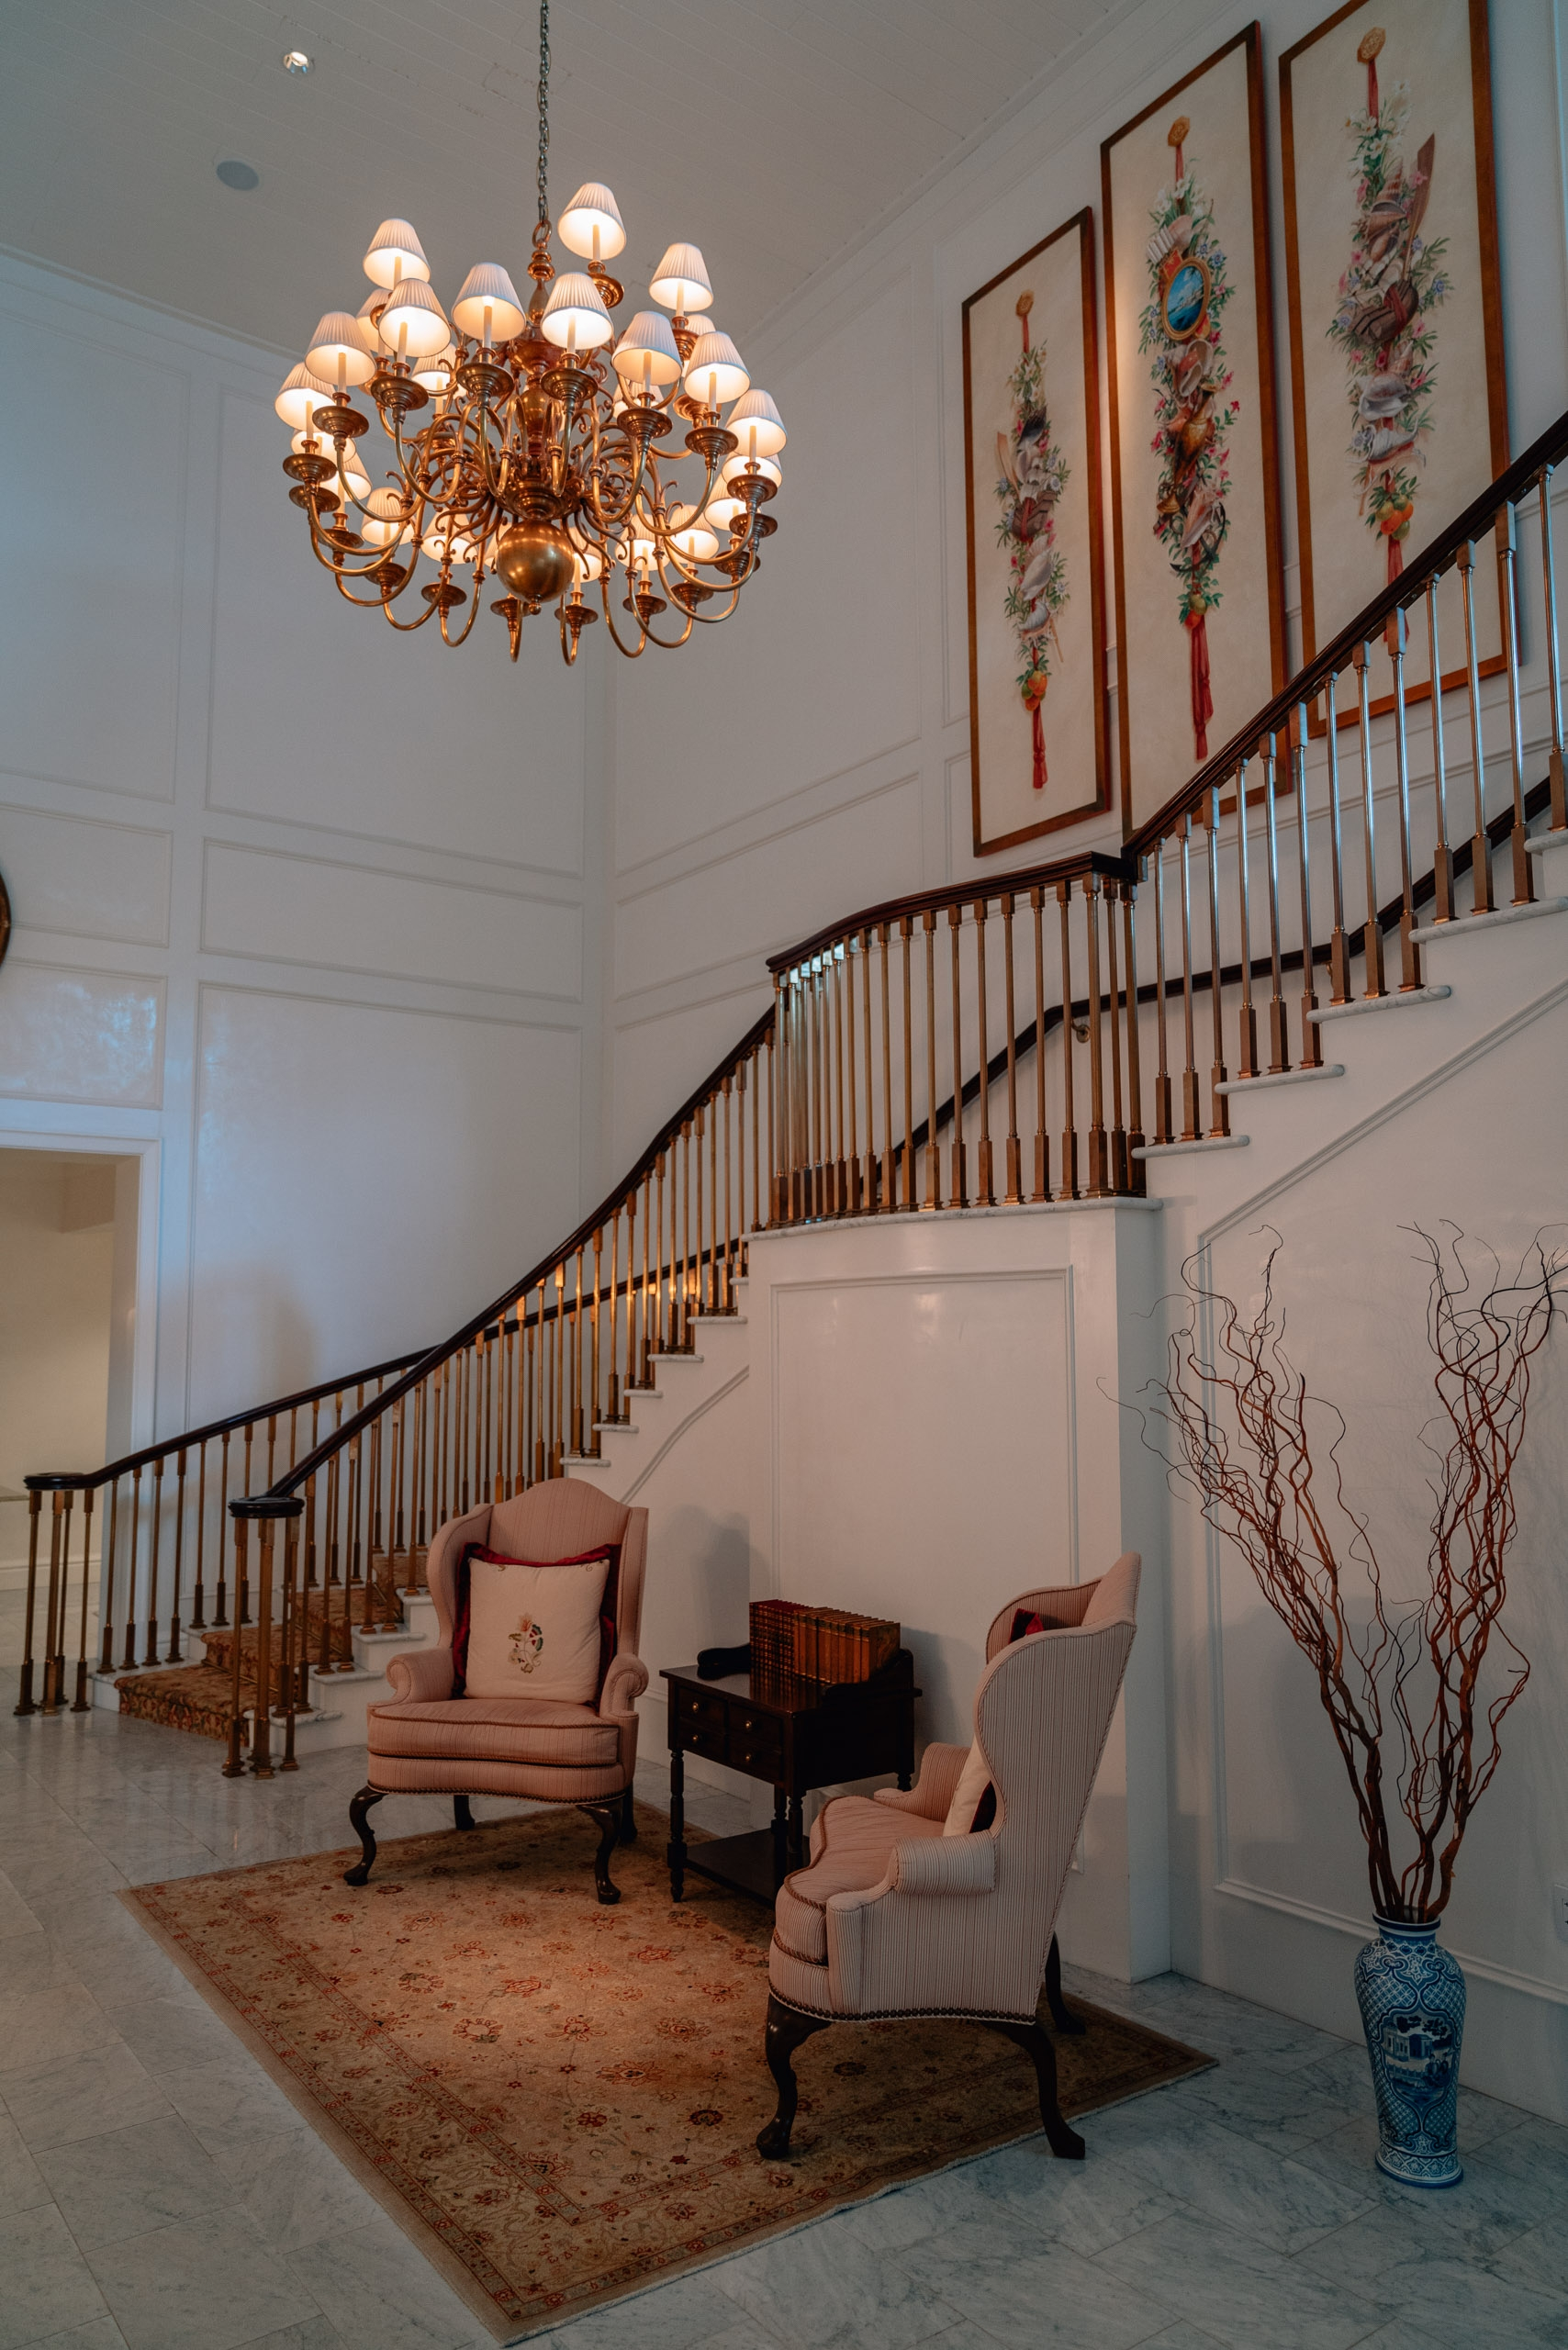 The Grand Staircase at the Rosewood Bermuda